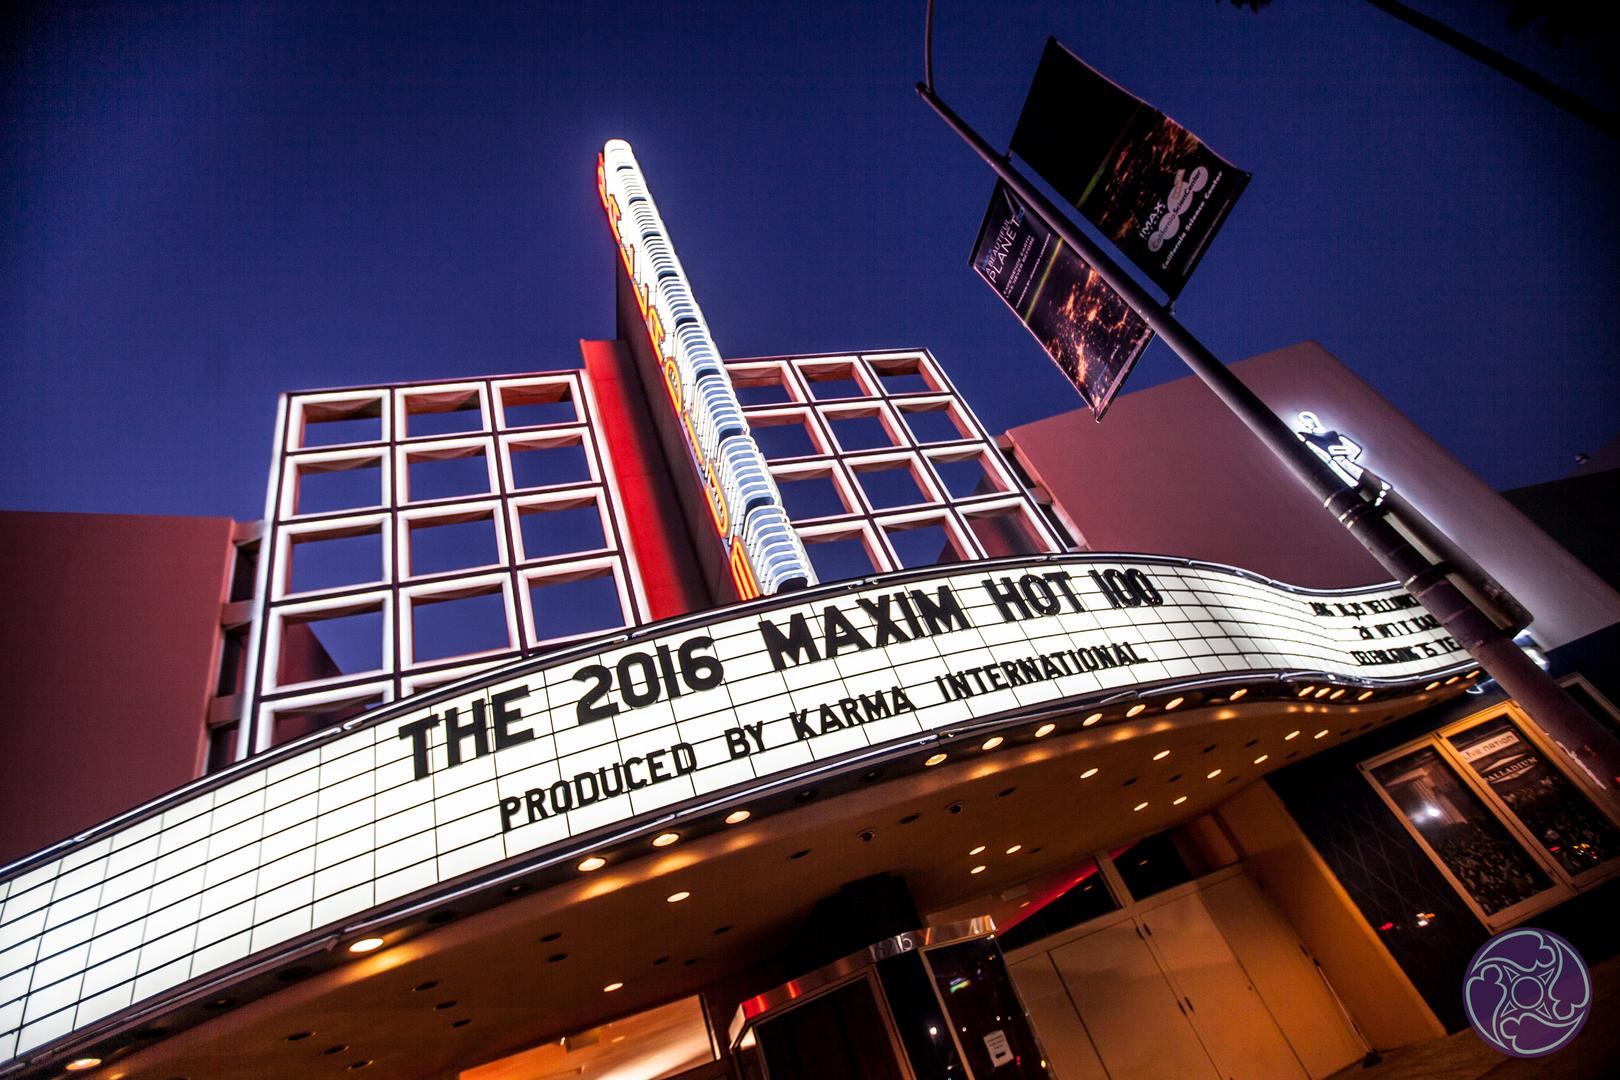 The Hollywood Palladium hosts the 2016 Maxim Hot 100 Party